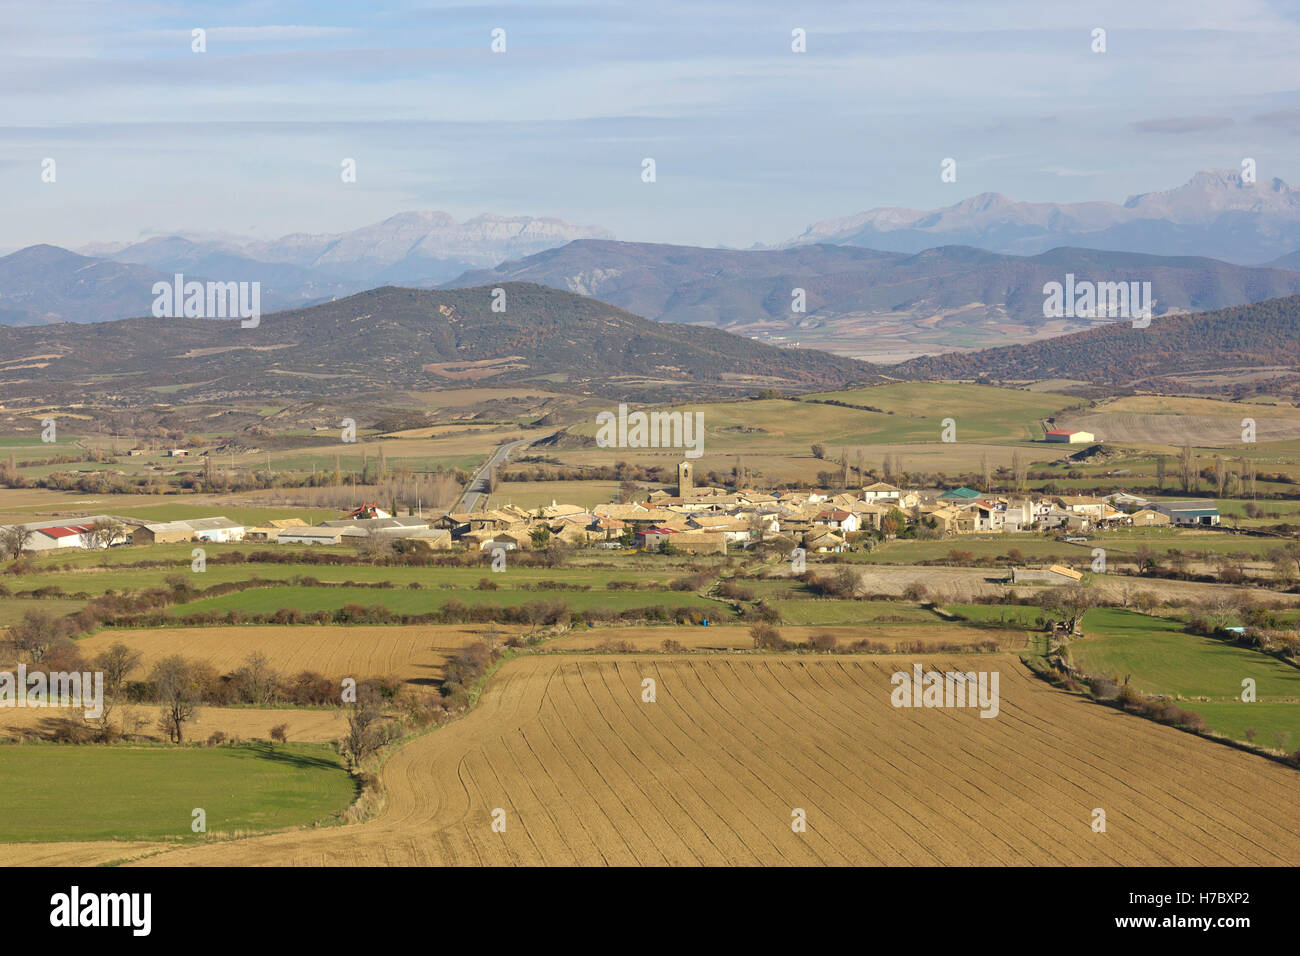 Rural village Bailo surrounded by farm lands in Huesca (Spain). - Stock Image